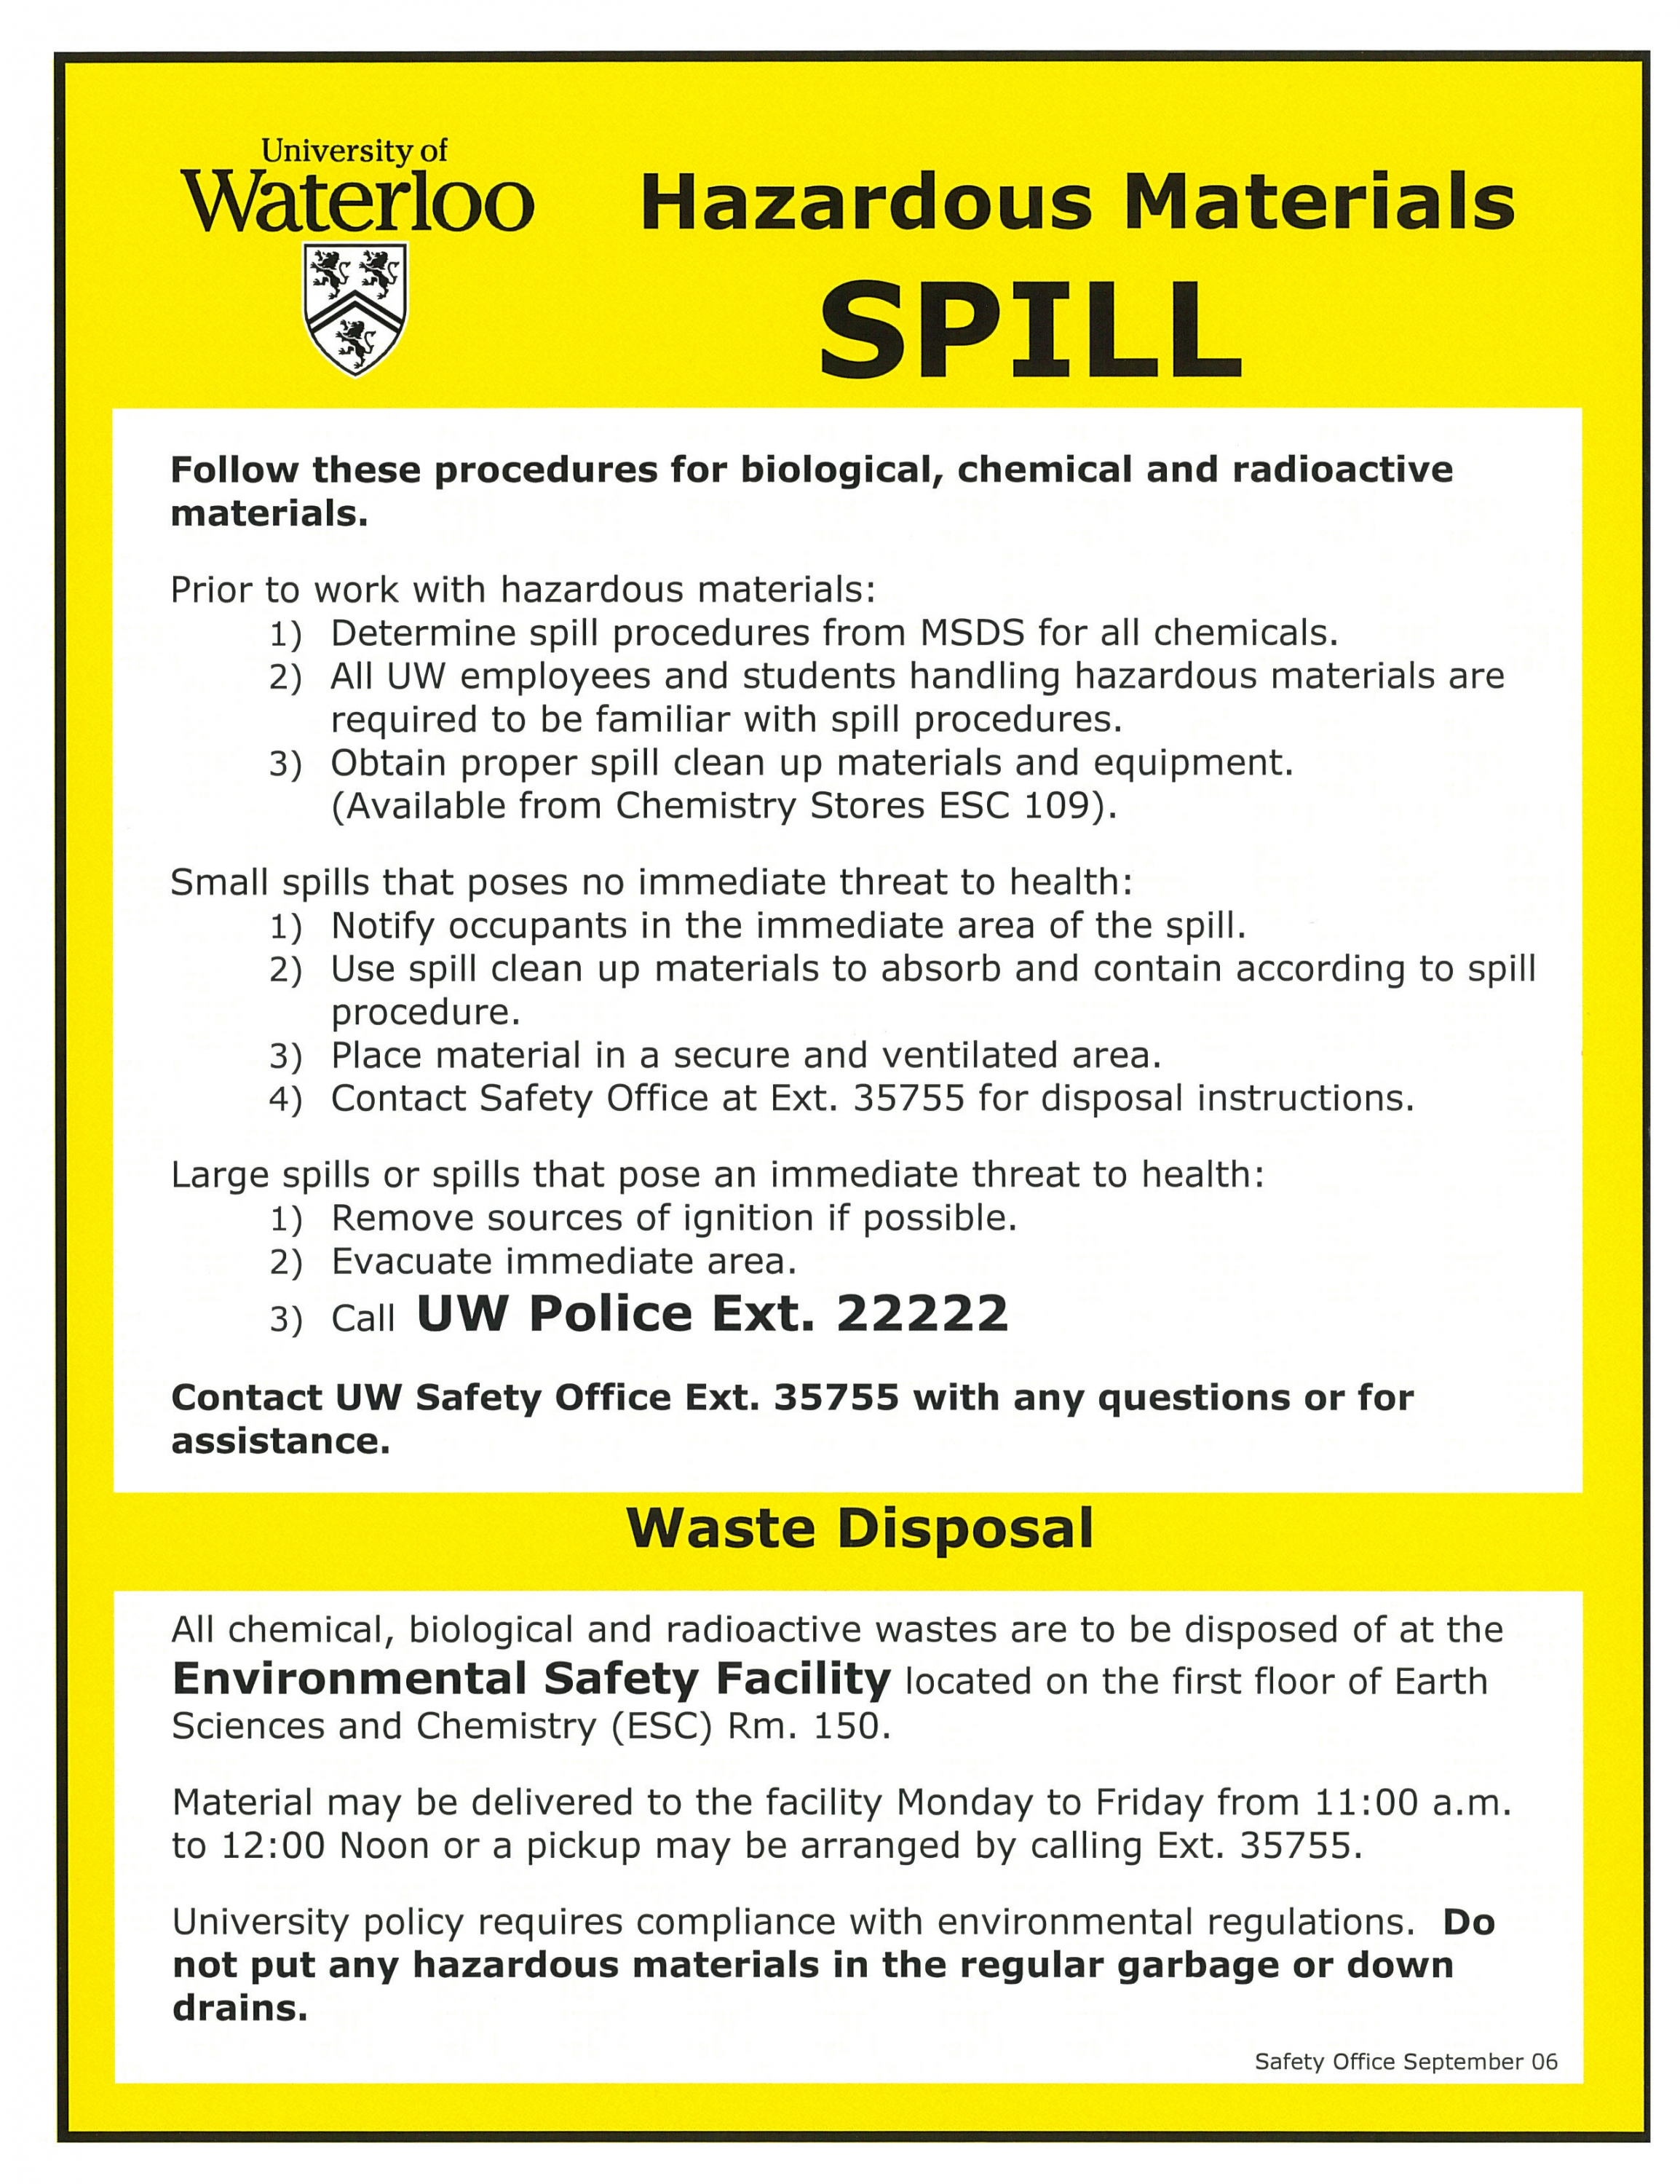 posting requirements safety office hazardous materials spills waste disposal